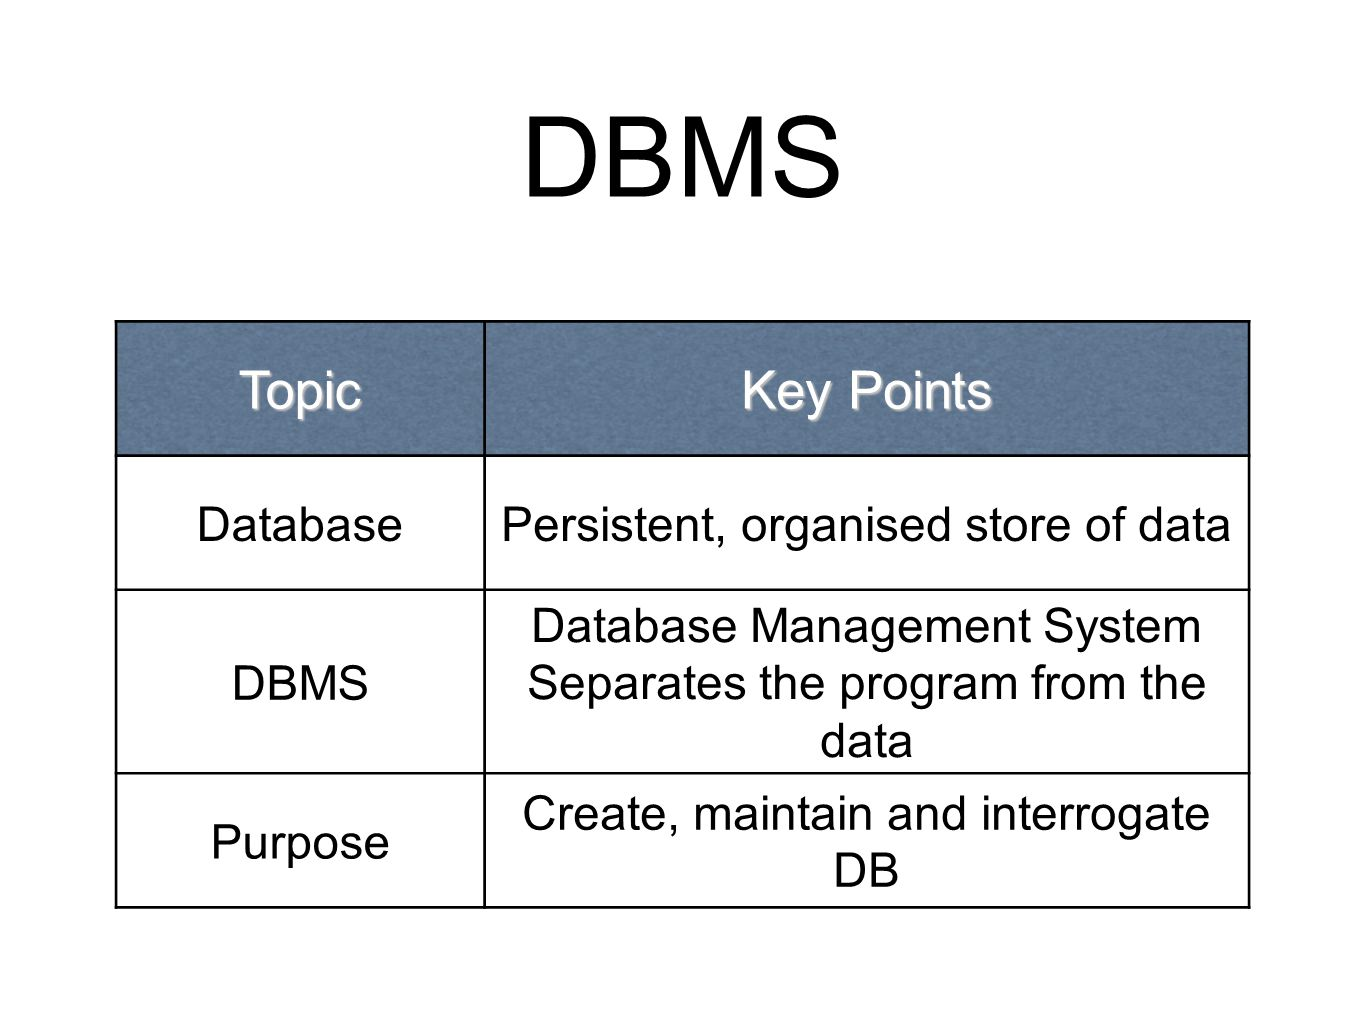 DBMS Topic Key Points DatabasePersistent, organised store of data DBMS Database Management System Separates the program from the data Purpose Create,